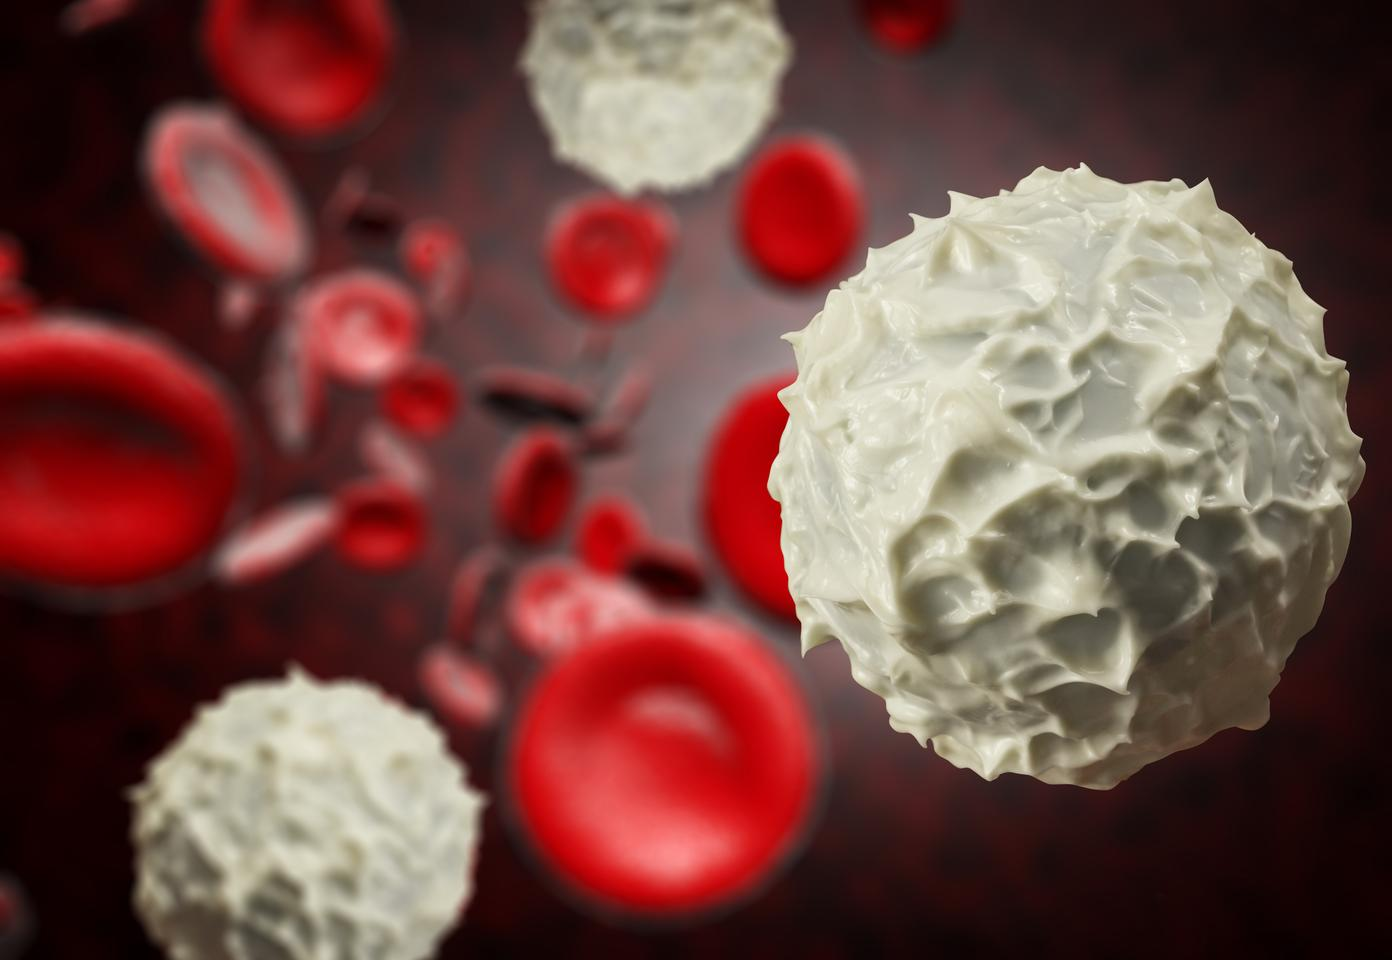 Multiple myeloma attacks the white blood cells, but a new treatment may help